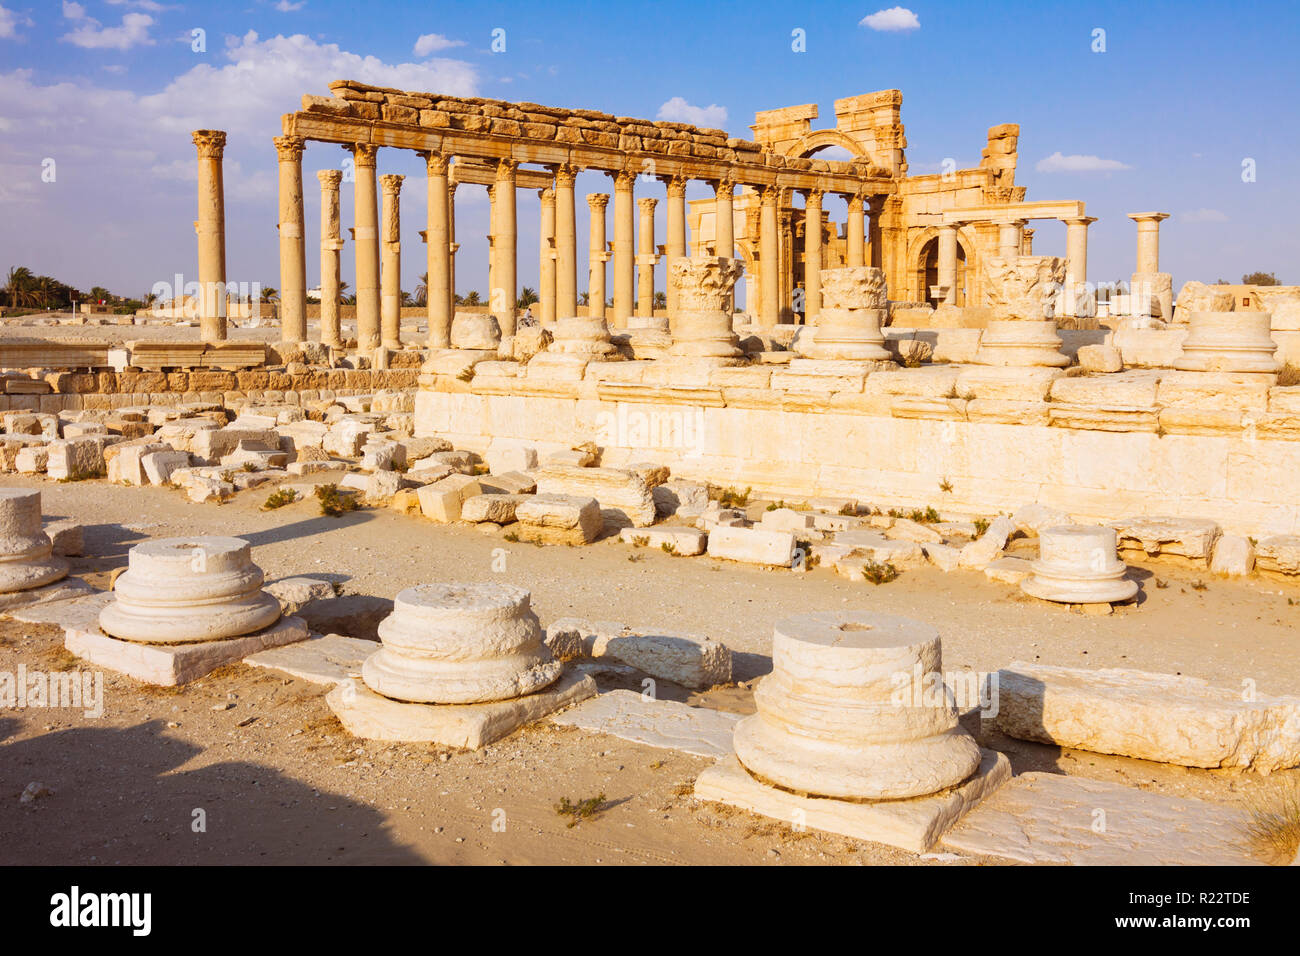 Palmyra, Homs Governorate, Syria - May 26th, 2009 : Great colonnade and 3rd century Monumental Arch of Triumph of Palmyra,  a Roman ornamental archway - Stock Image